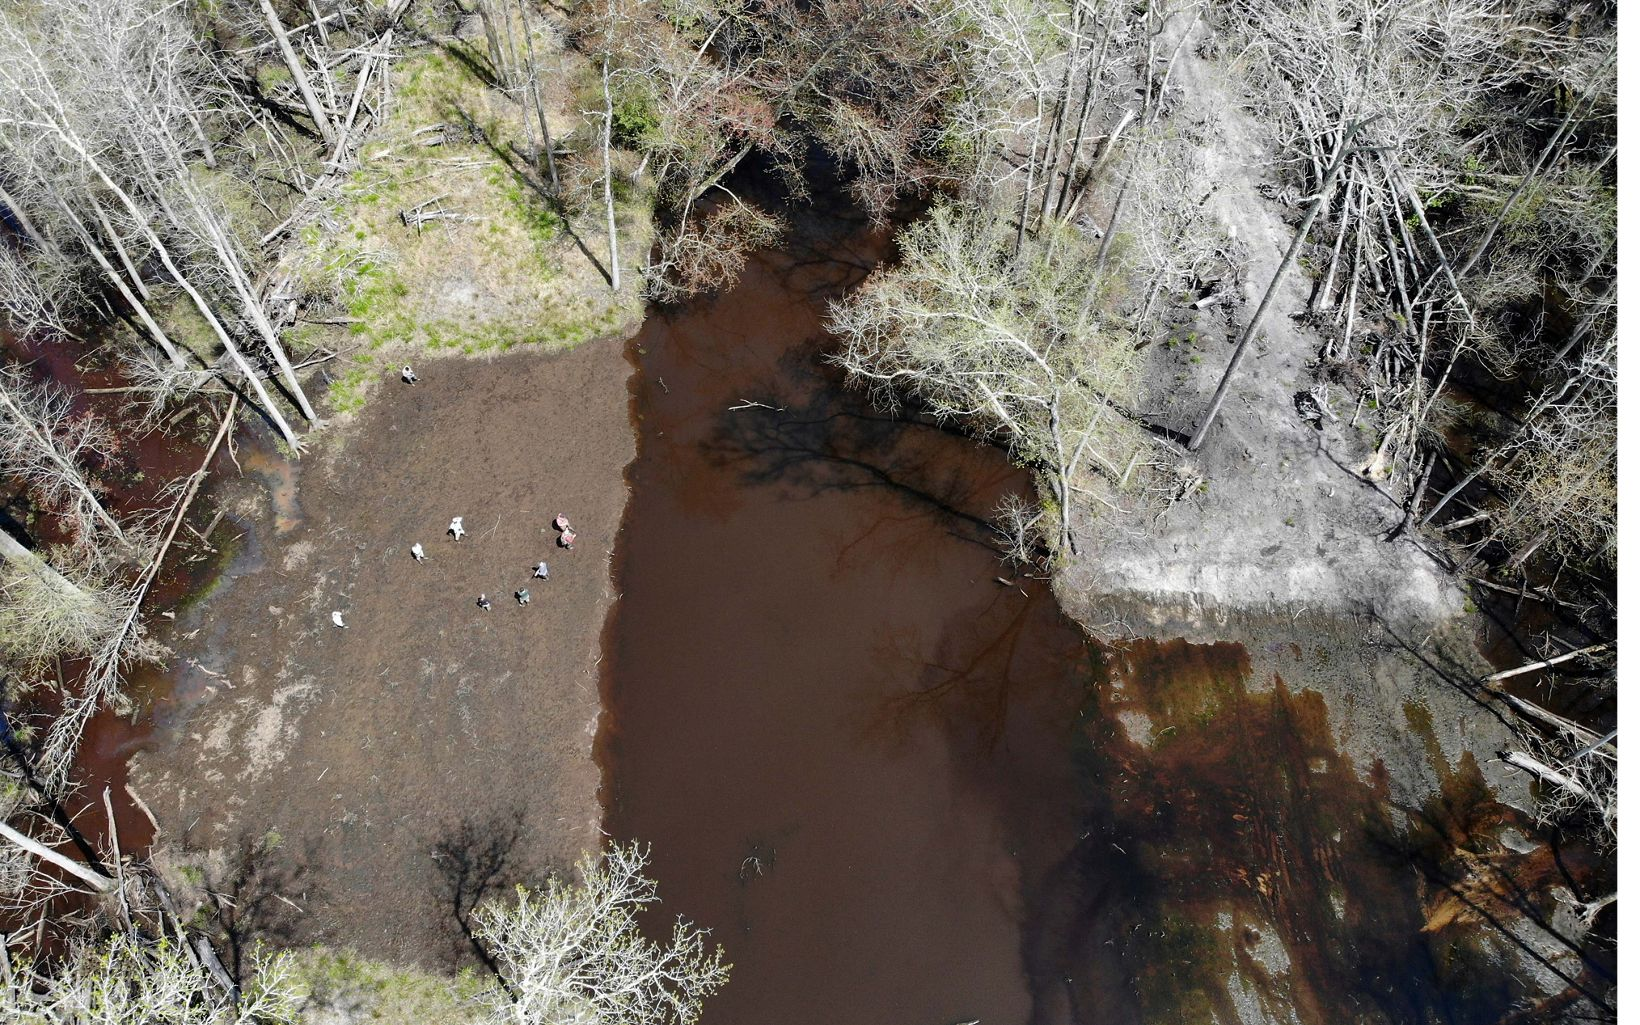 Drone footage showing water receding from a recent flood event along the Pocomoke River.